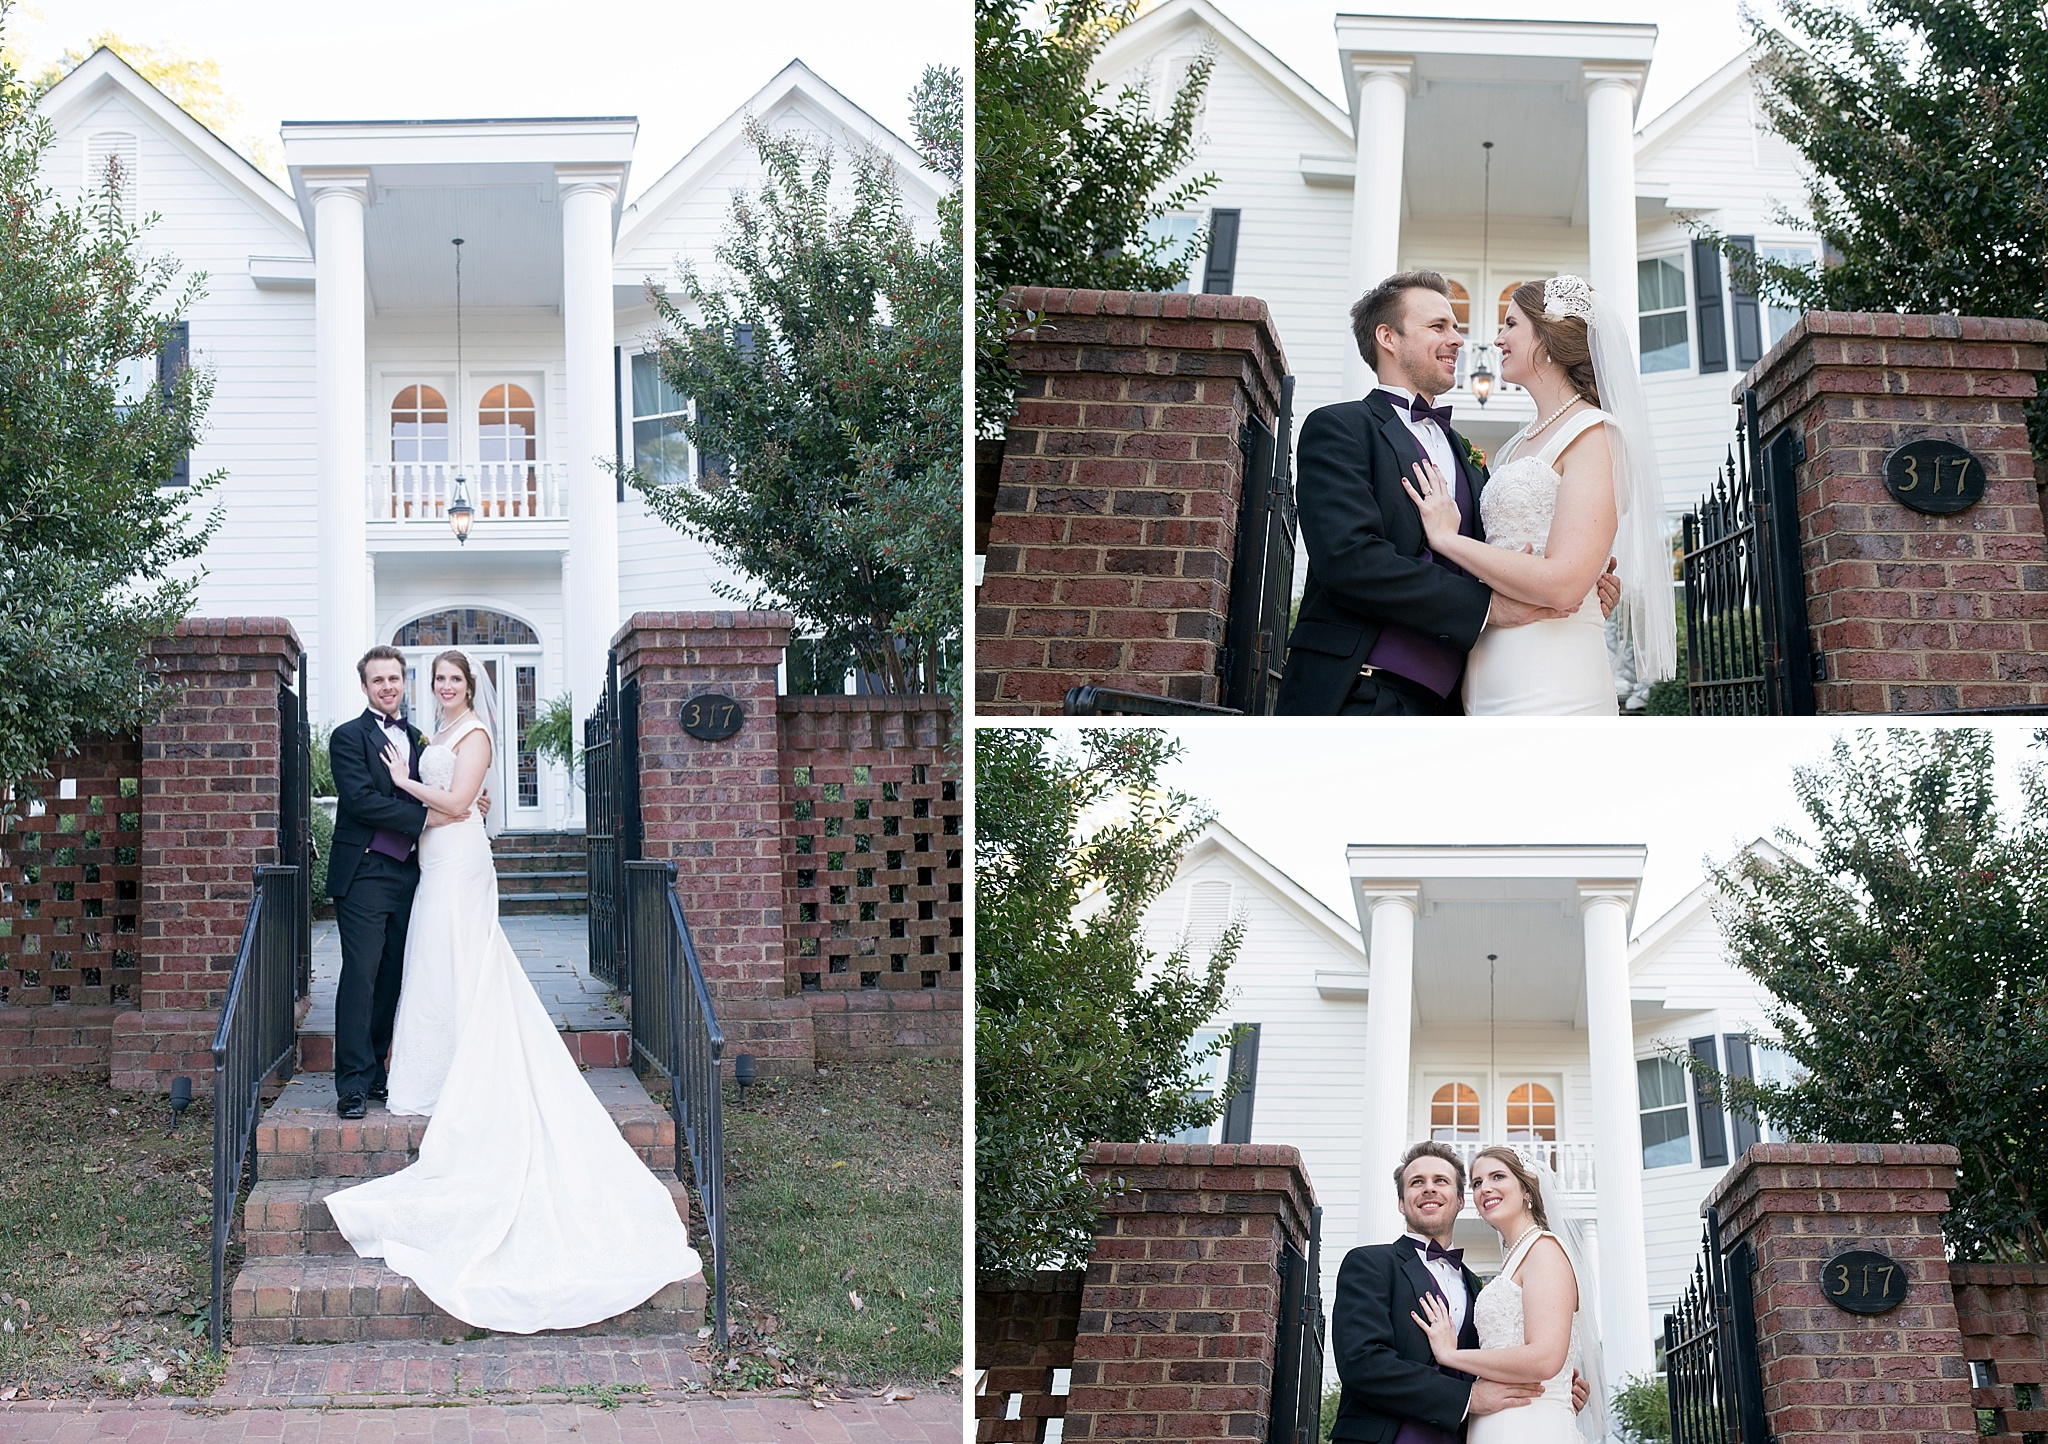 Matthews-House-Wedding-Photographer-Cary-NC-130.jpg